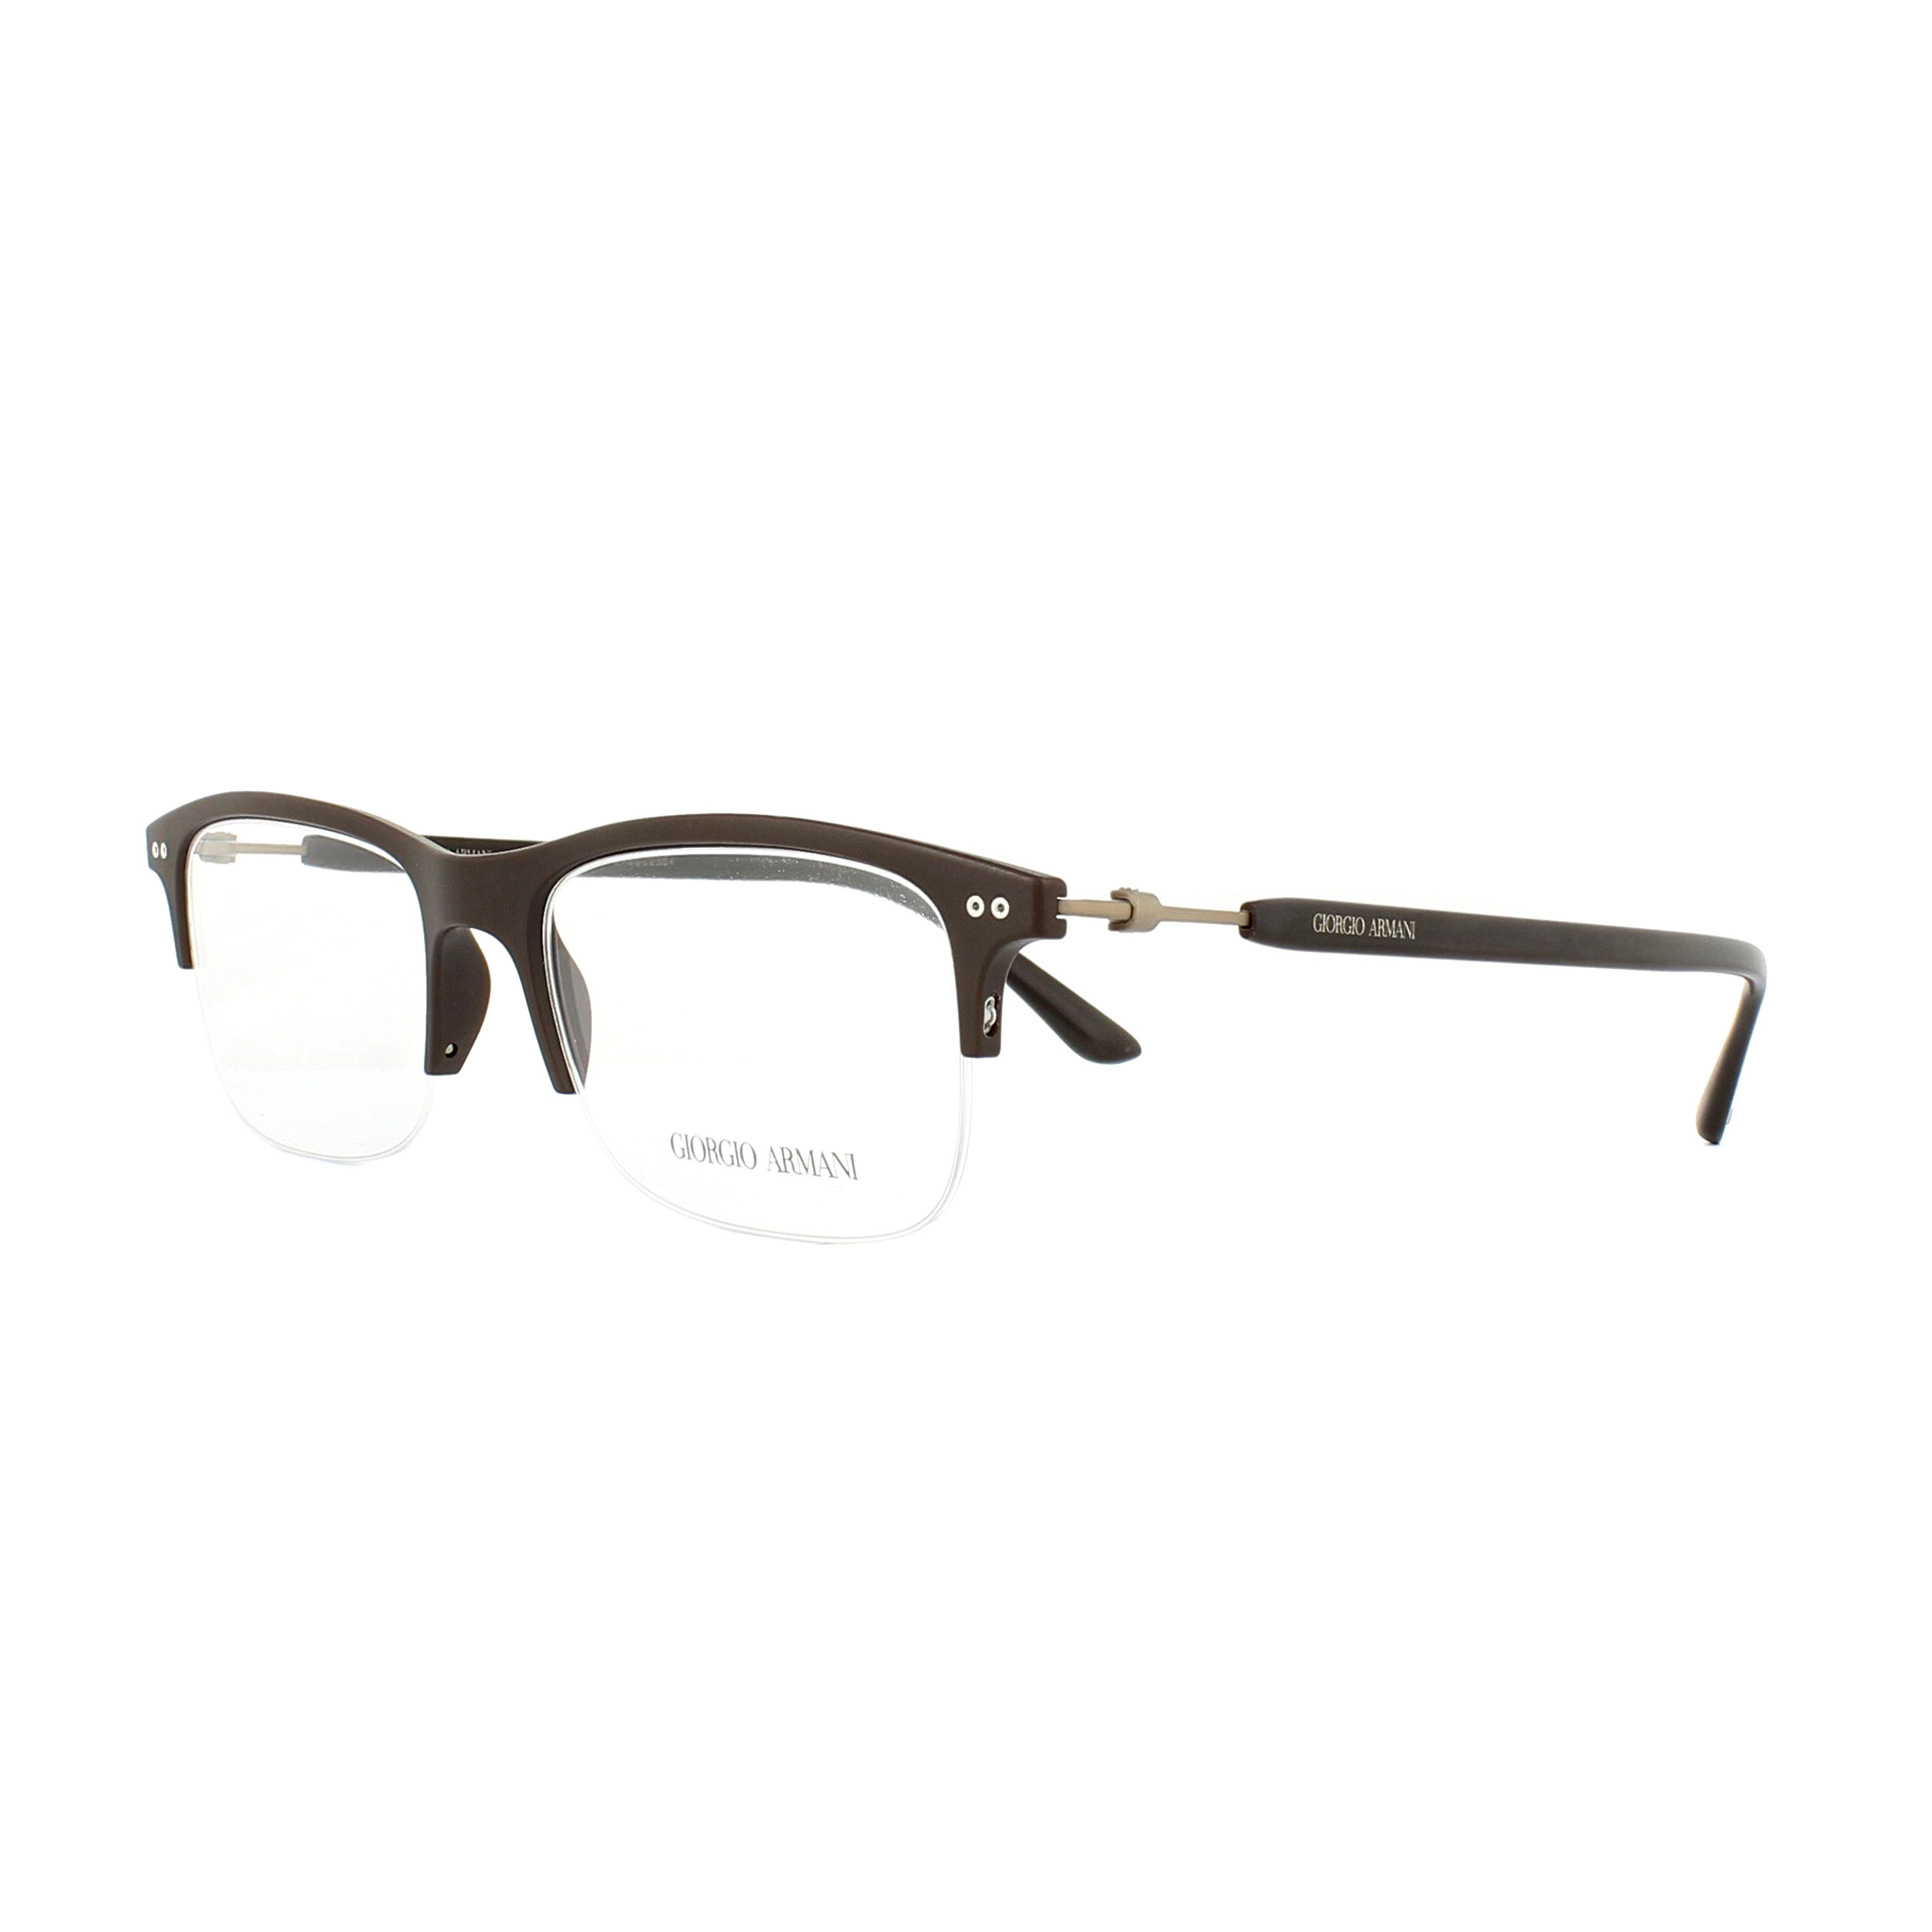 974fa33a3b63e Sentinel Giorgio Armani Glasses Frames AR7113 5491 Matte Brown 53mm Mens